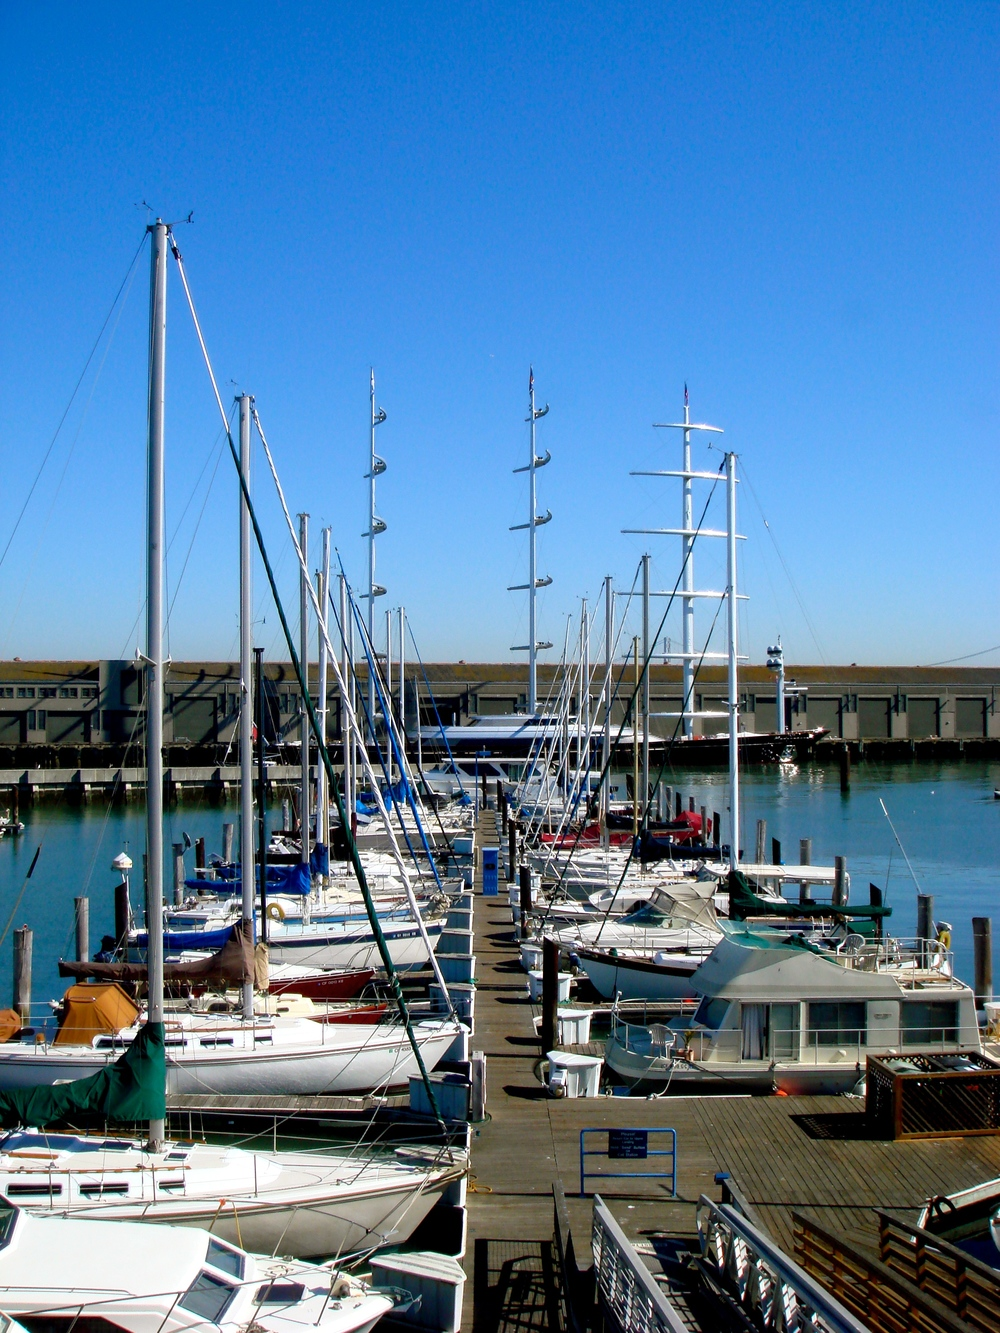 The Harbour in San Francisco